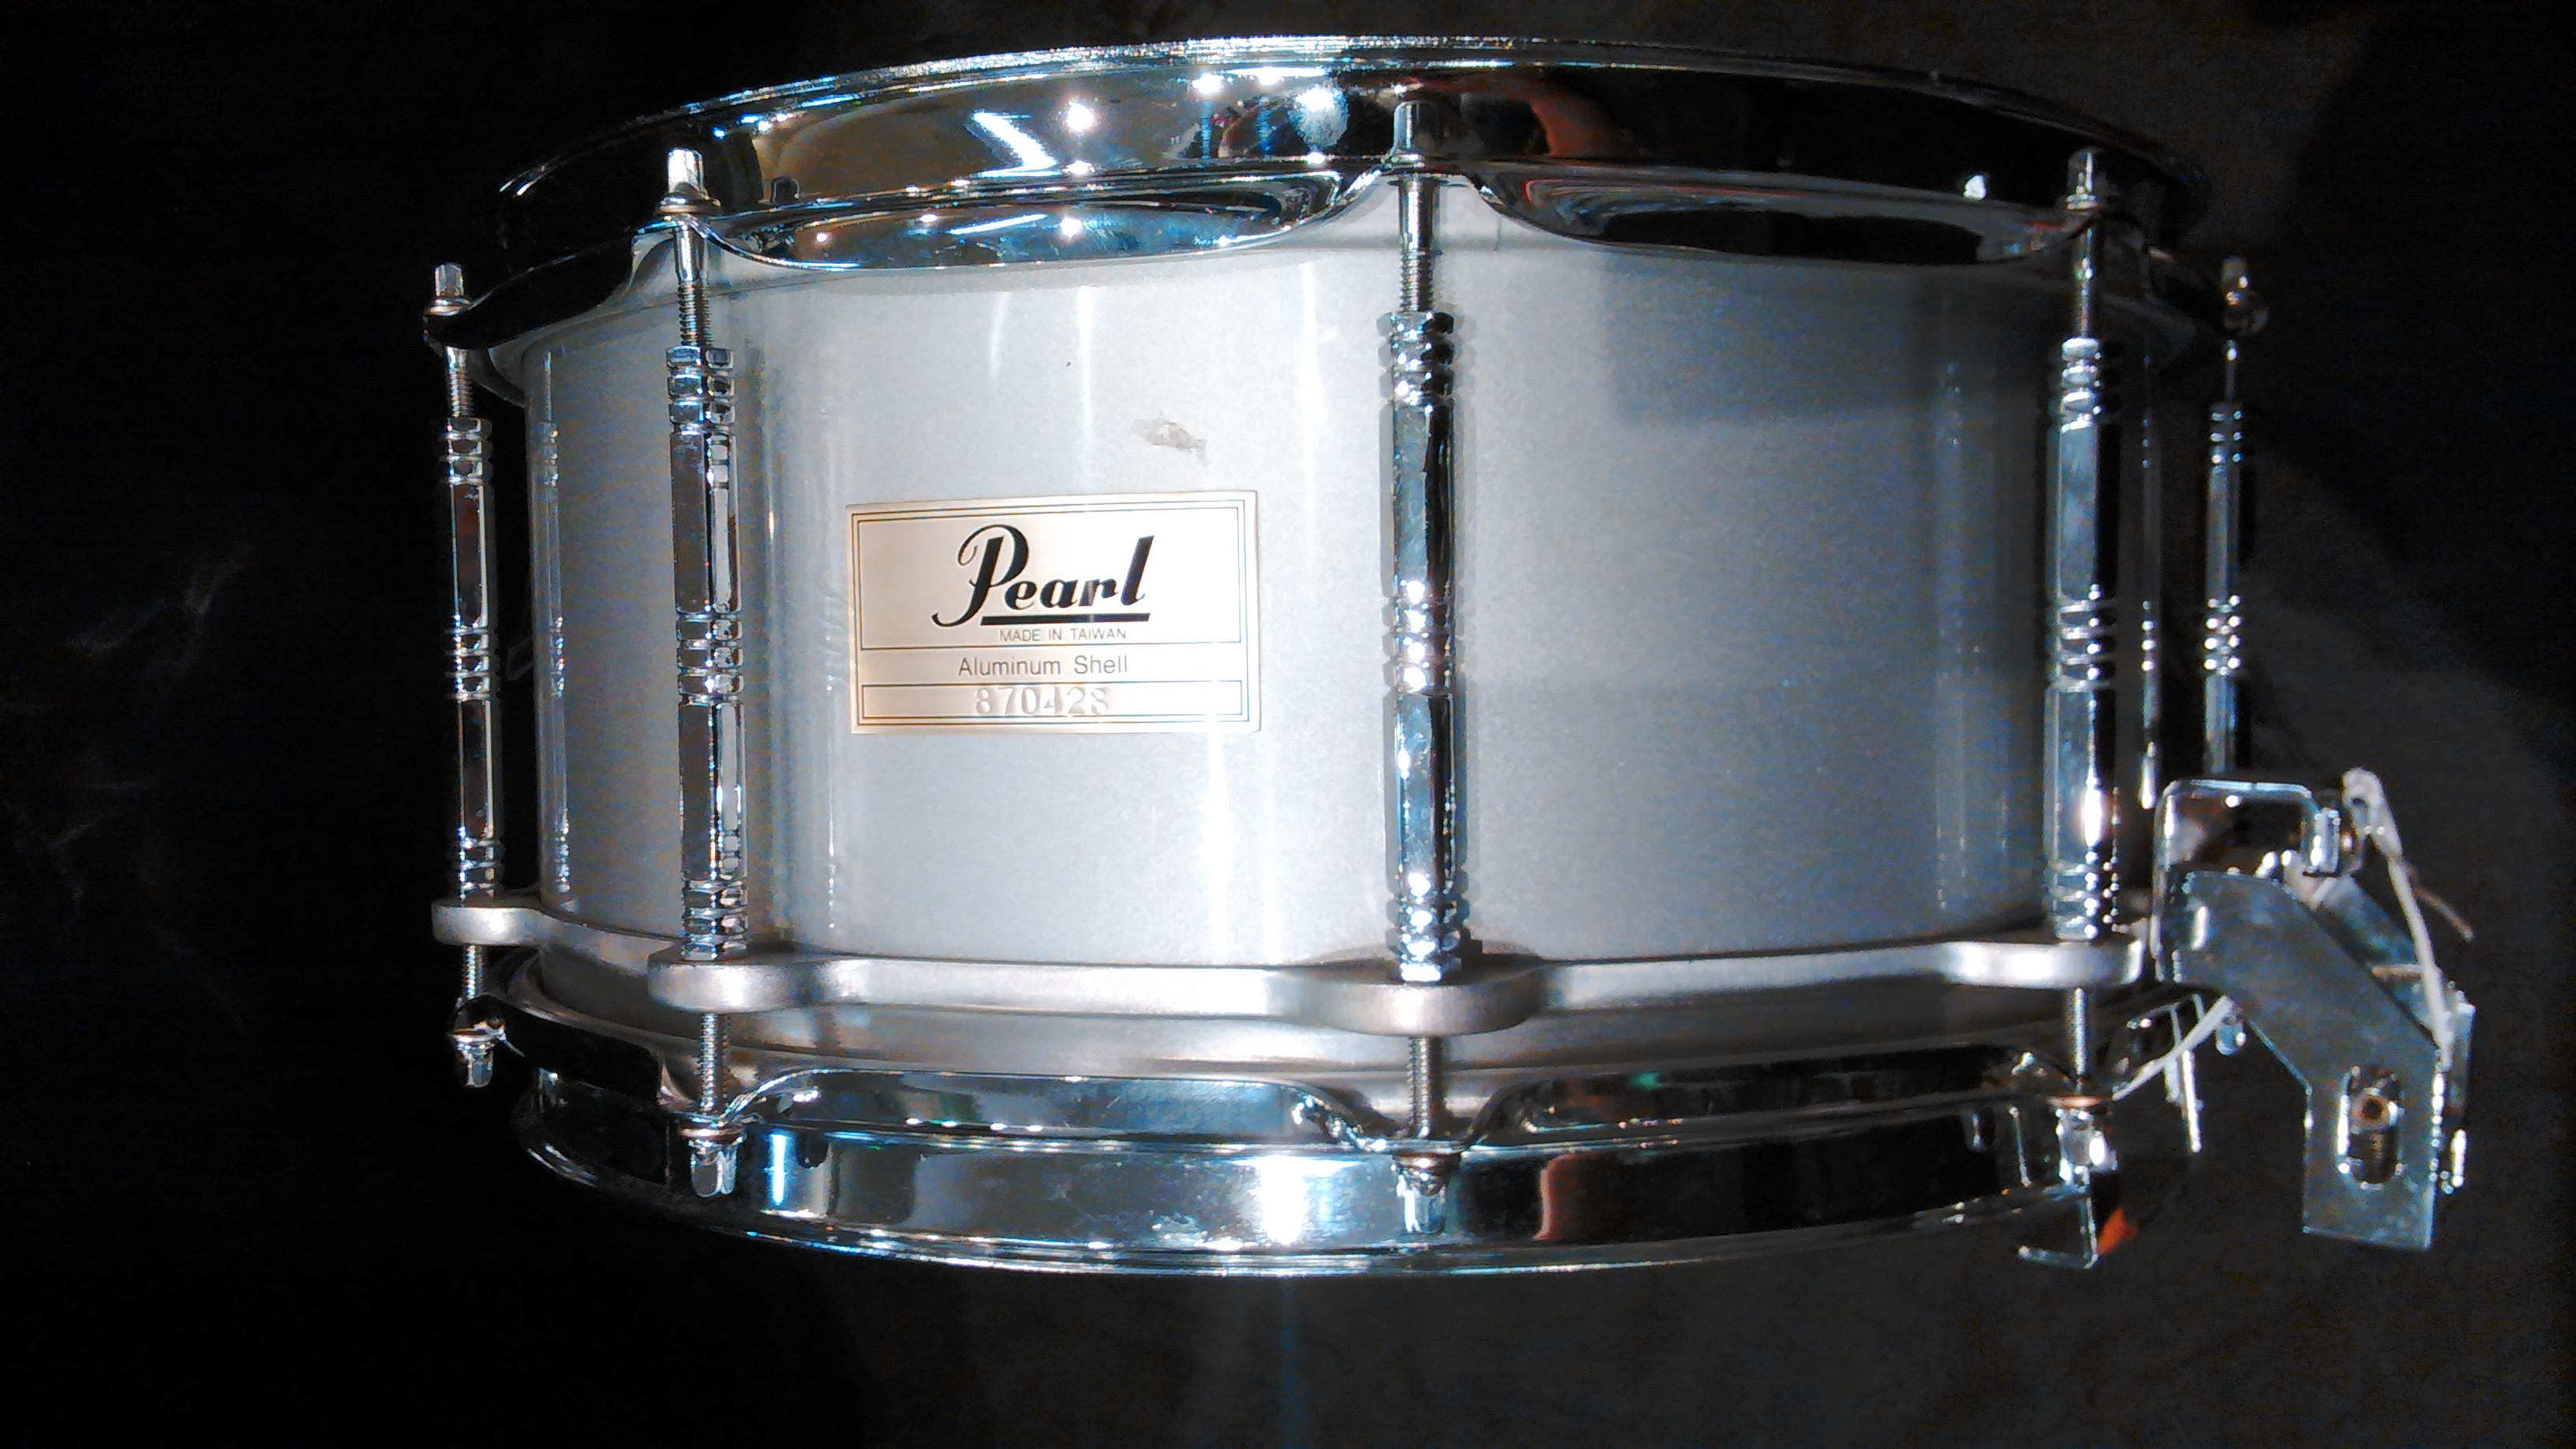 Pearl - 6.5x14 80's Aluminum Free Floating Snare